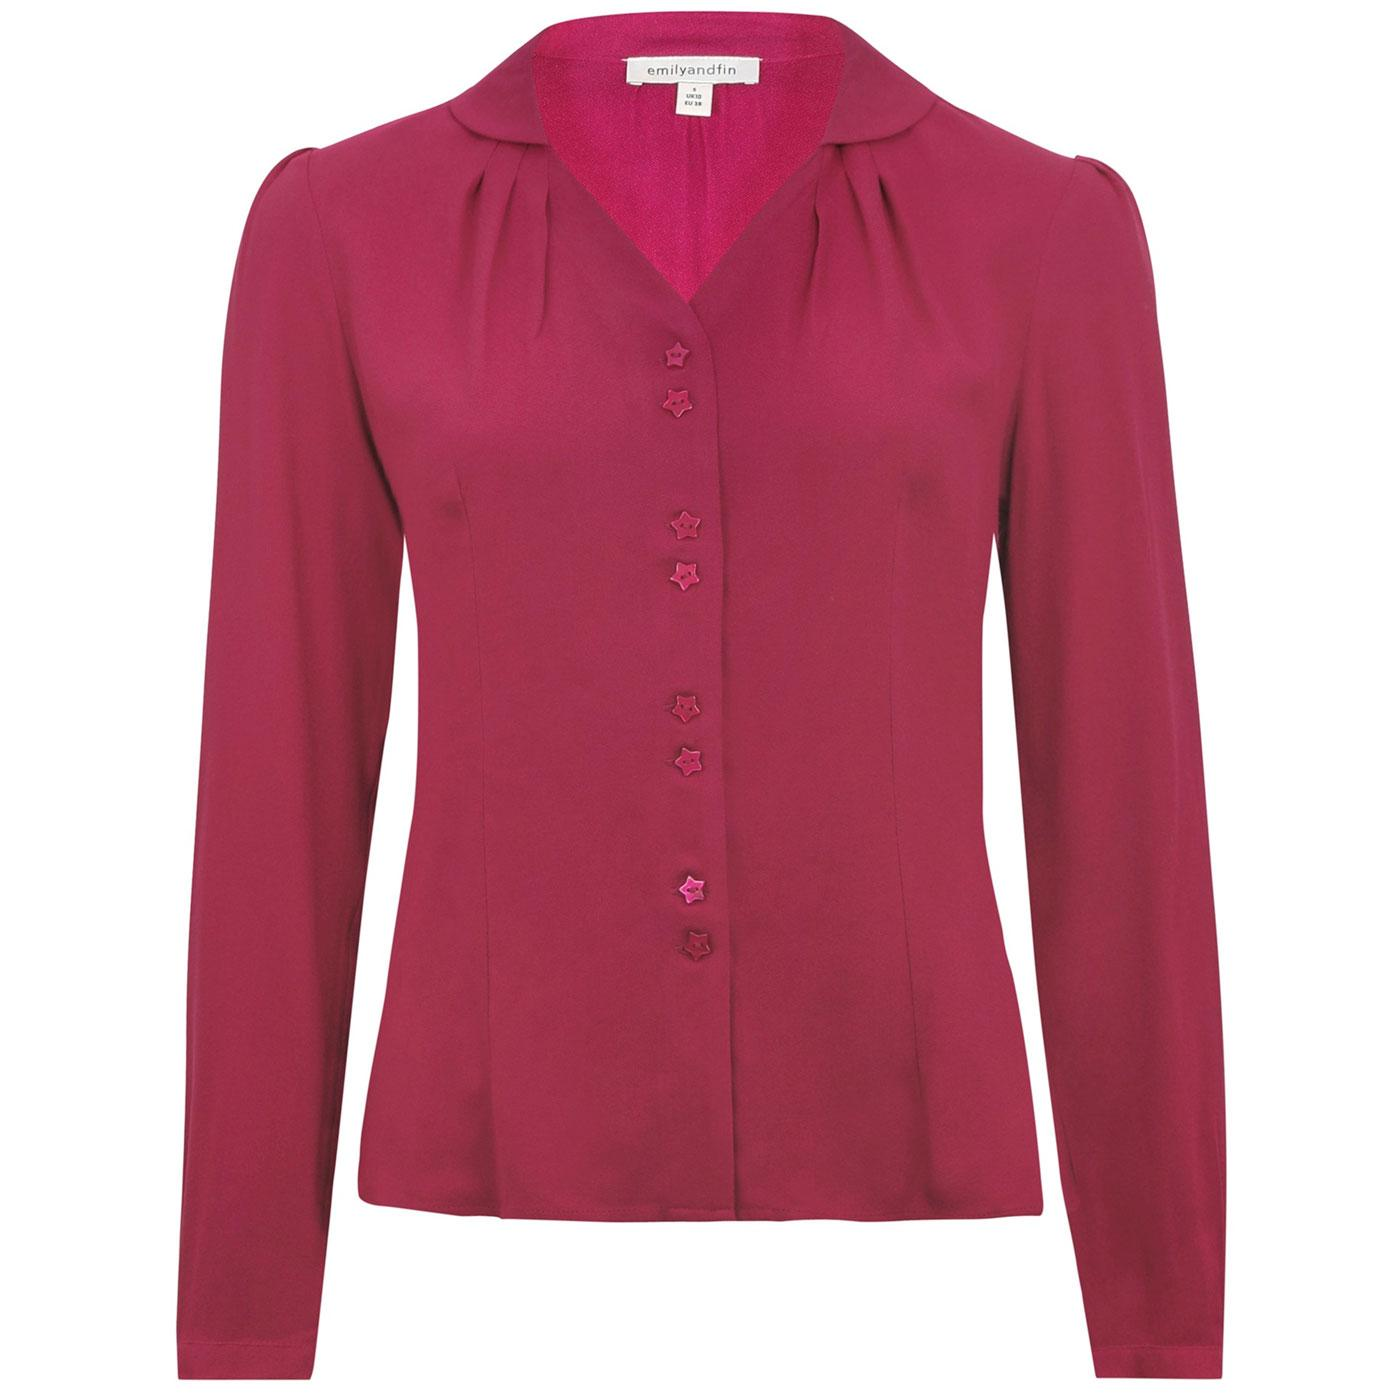 Elspeth EMILY AND FIN Retro Raspberry Crepe Shirt